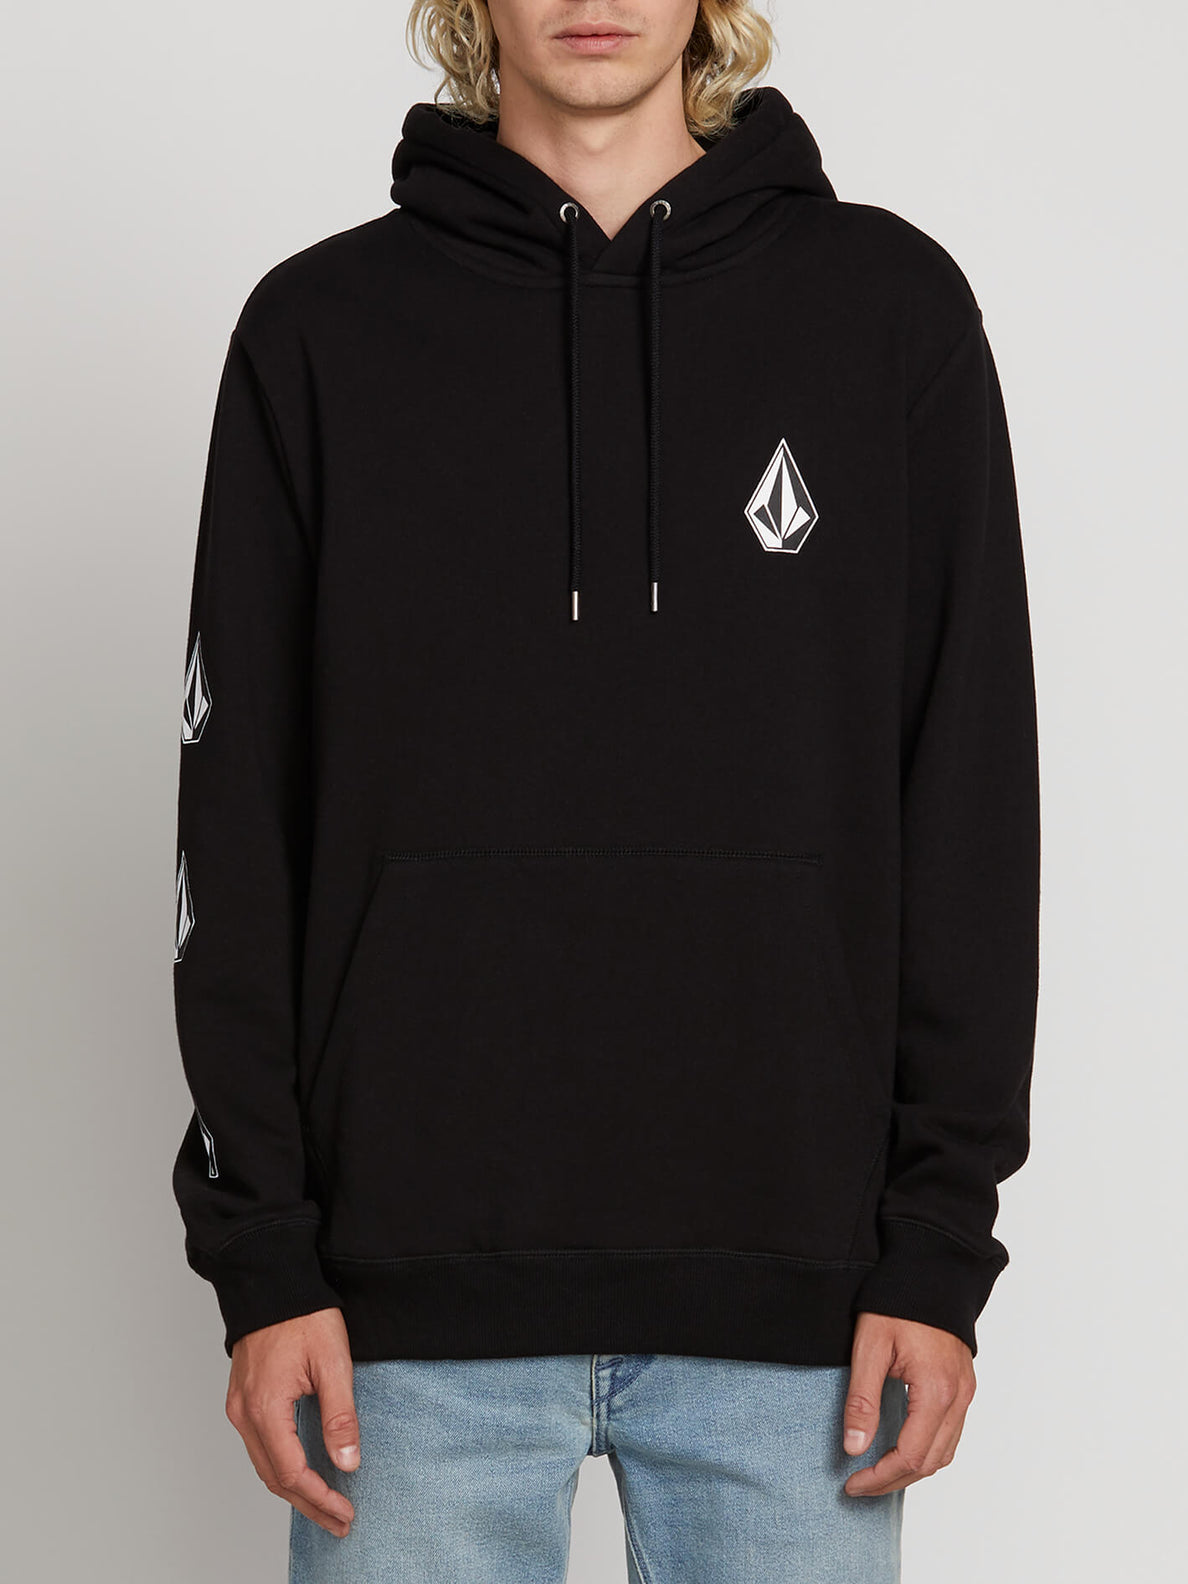 75f57eaaf Deadly Stones Pullover Hoodie - New Black – Volcom